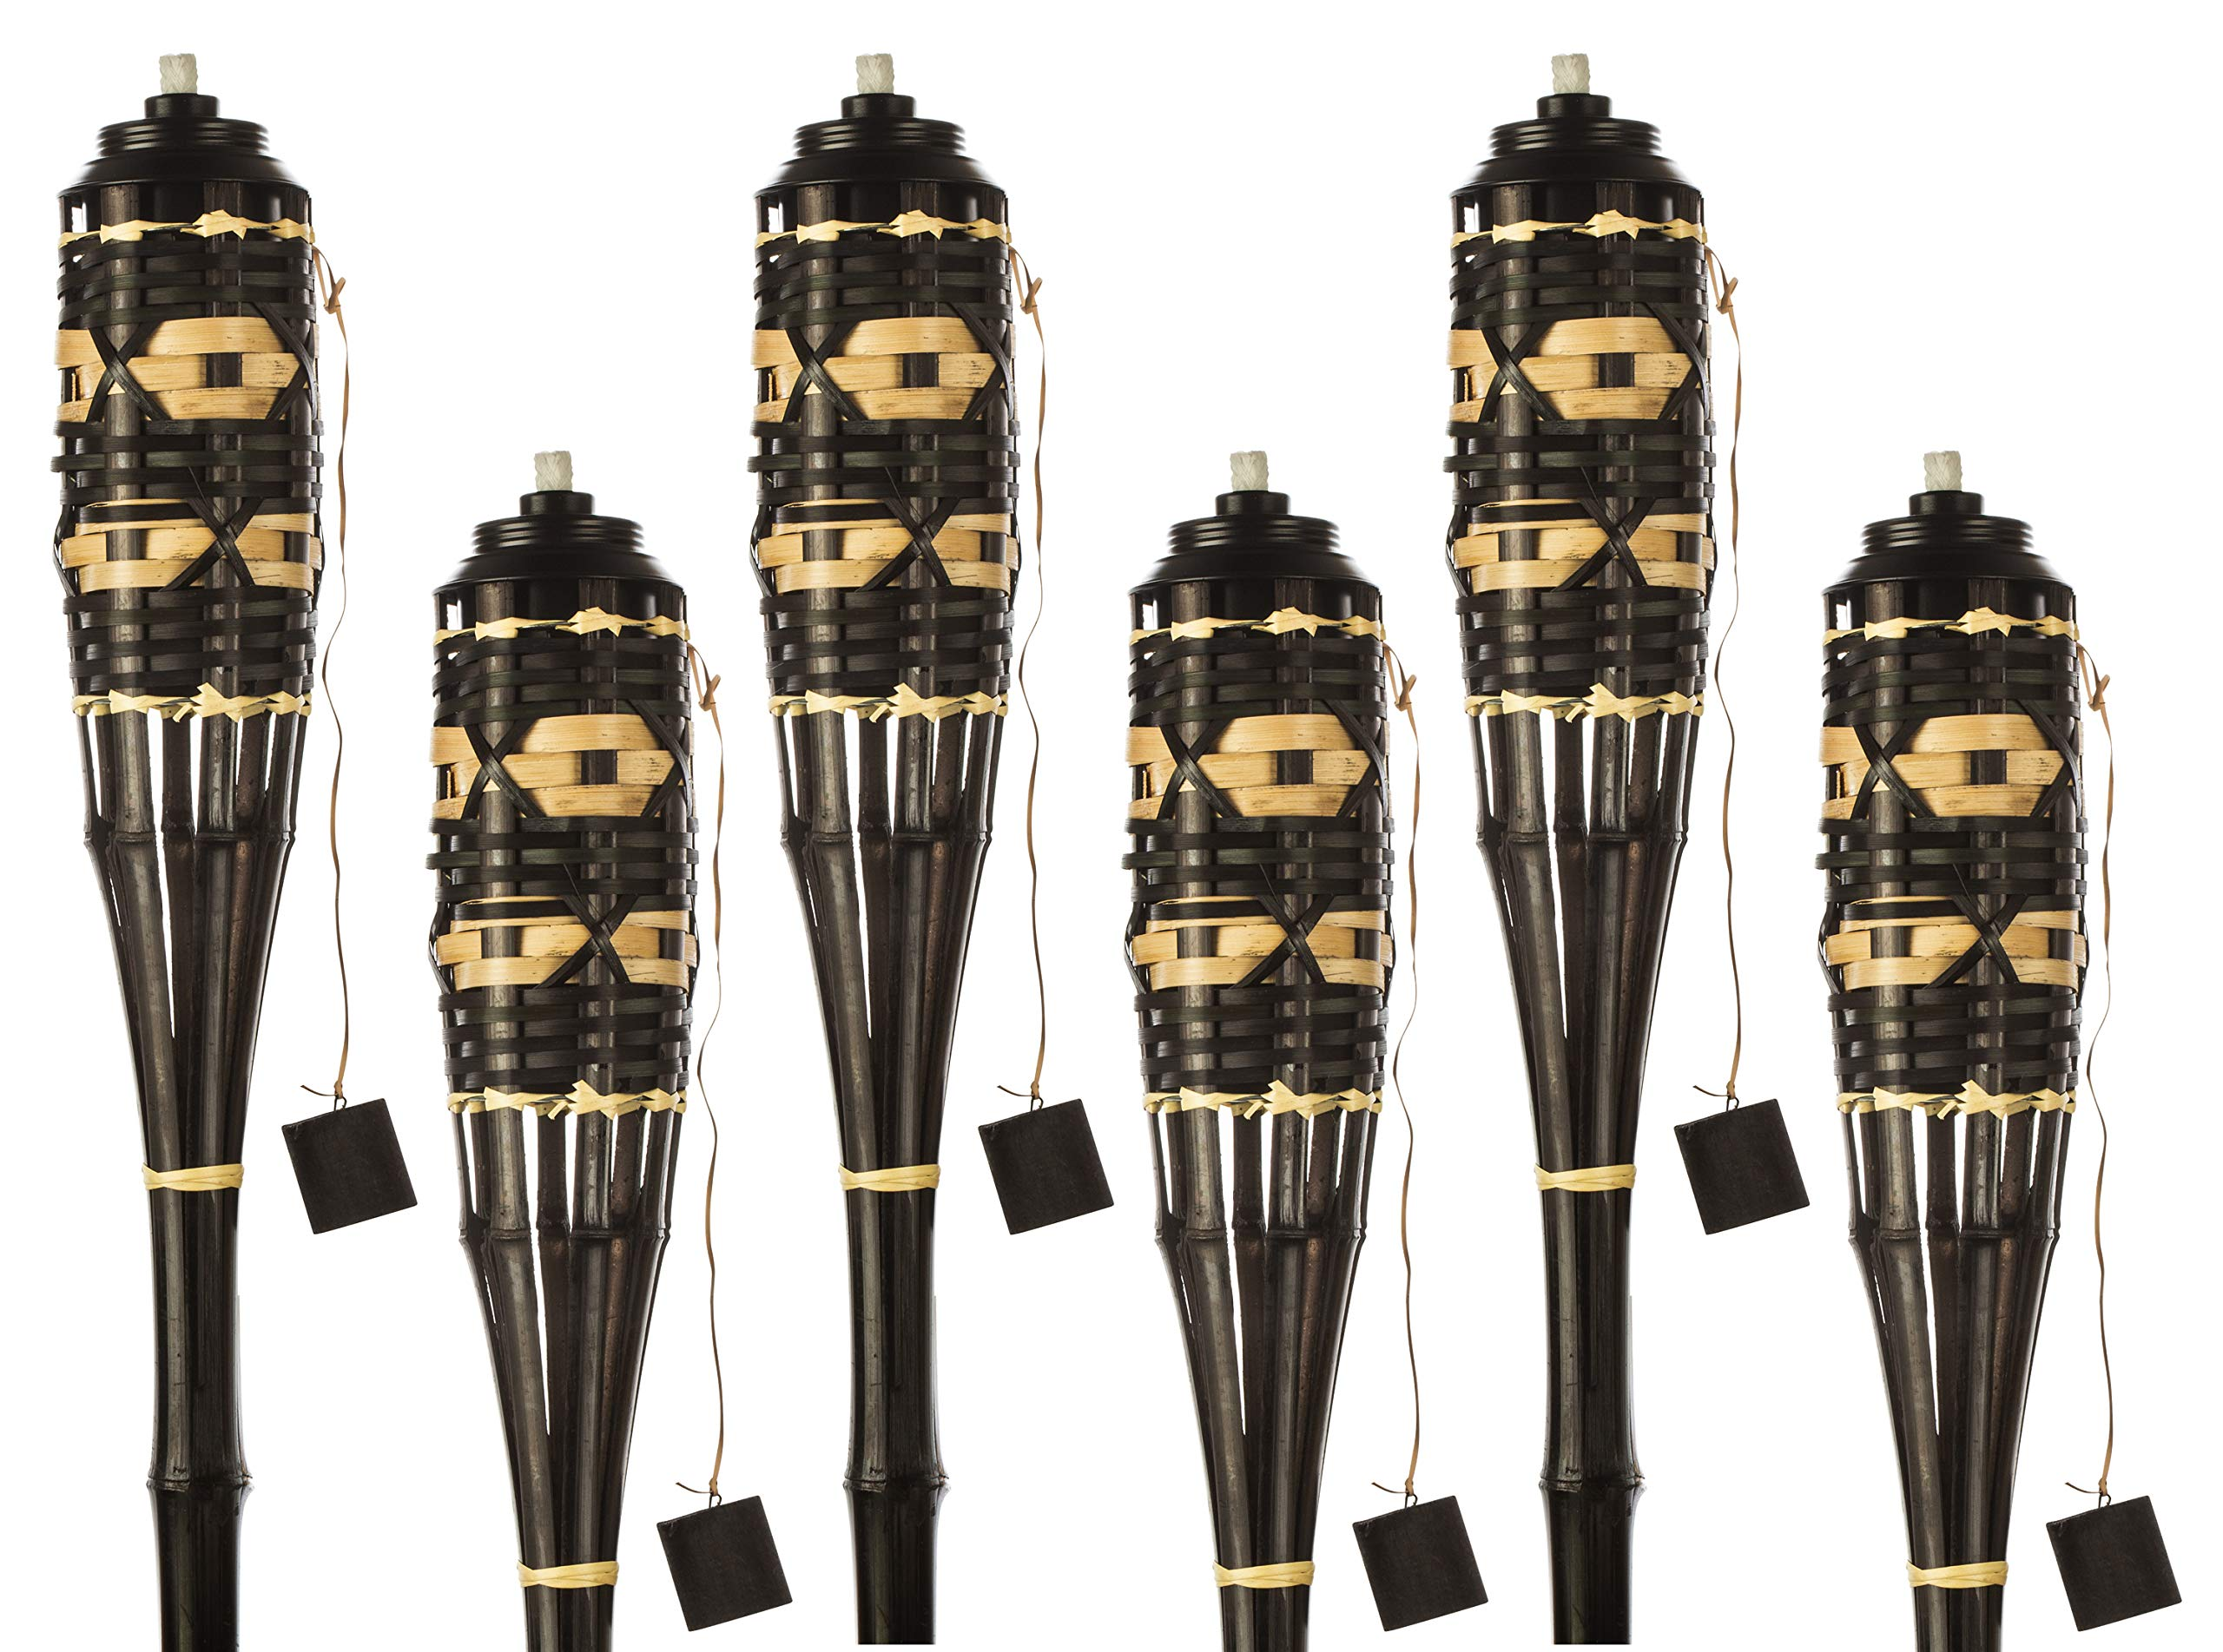 5 Star North Brown/Natural Weave Bamboo Torches; Decorative Torches with Fiberglass Wicks; Extra-Large (16oz) Metal Canisters for Longer Lasting Burn; Stands 59'' Tall (6 Pack)